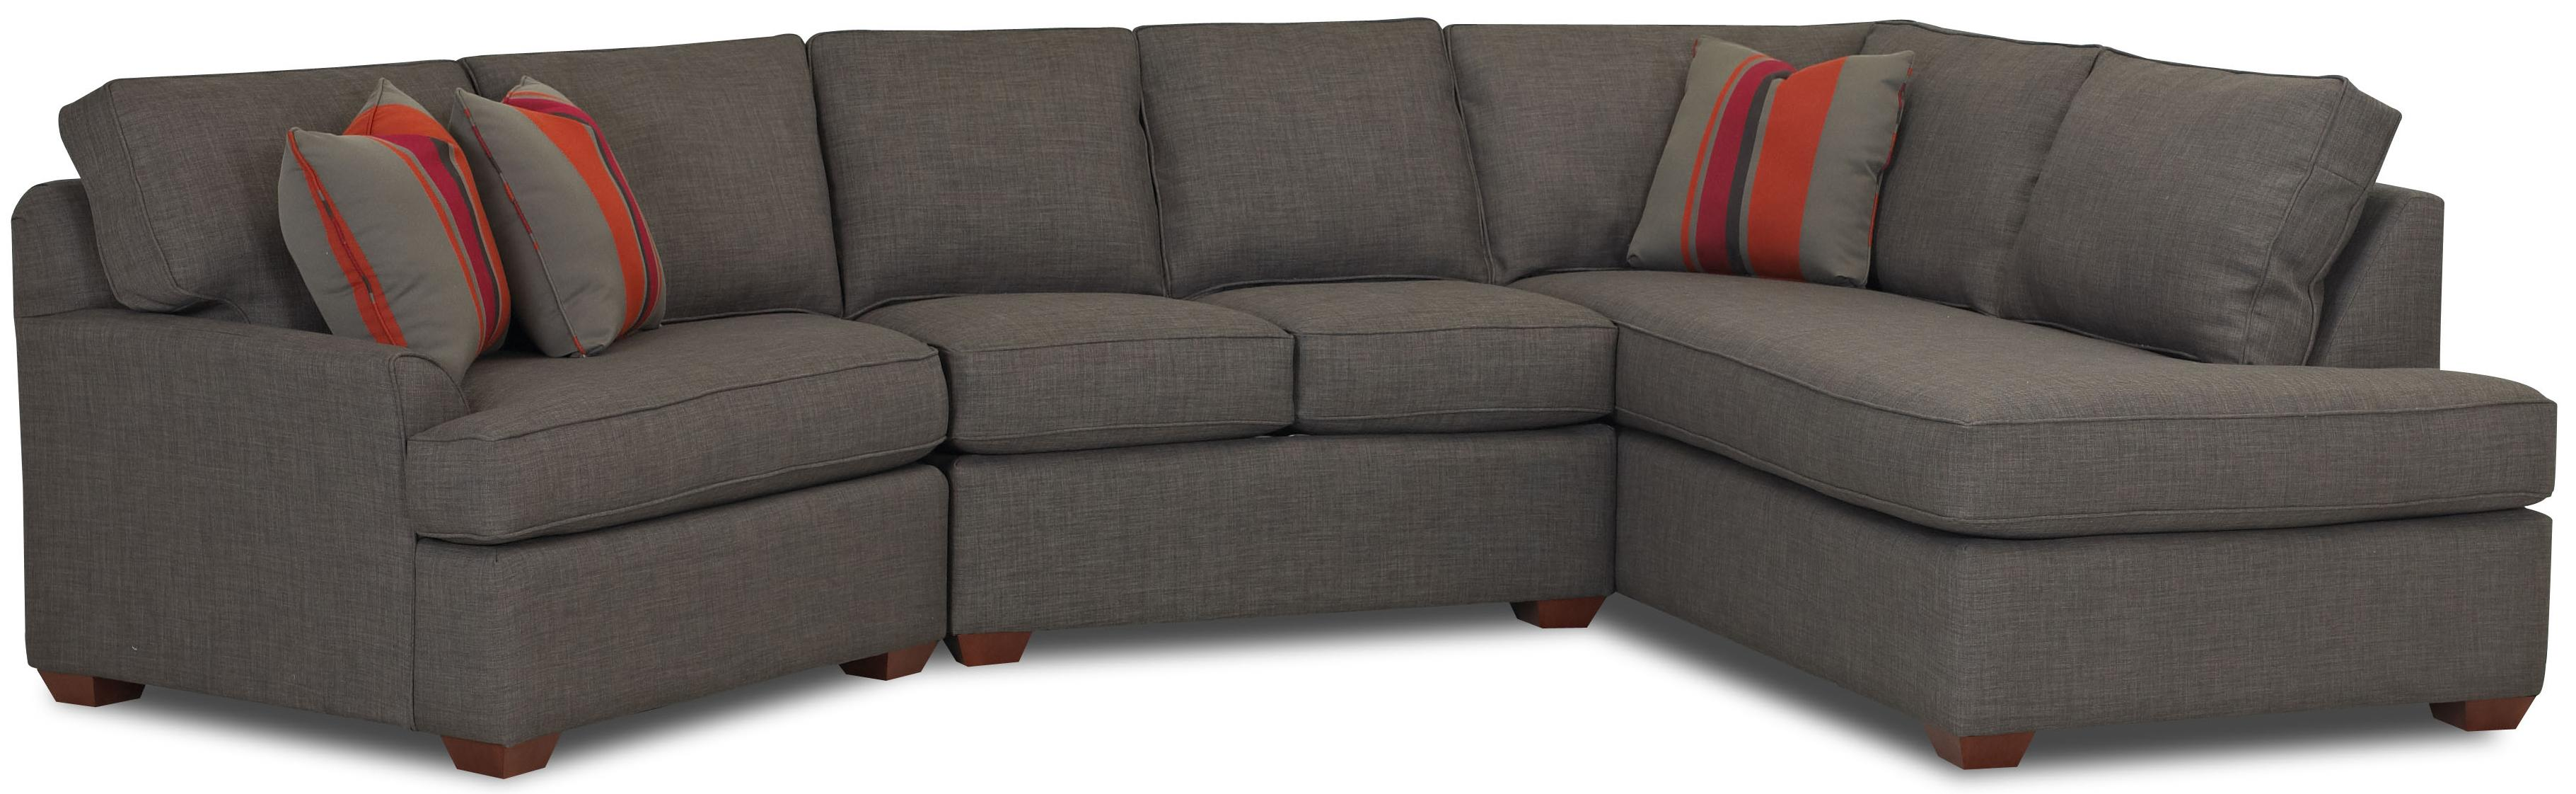 contemporary chaise sofa 60 rv sleeper sectional with right by klaussner